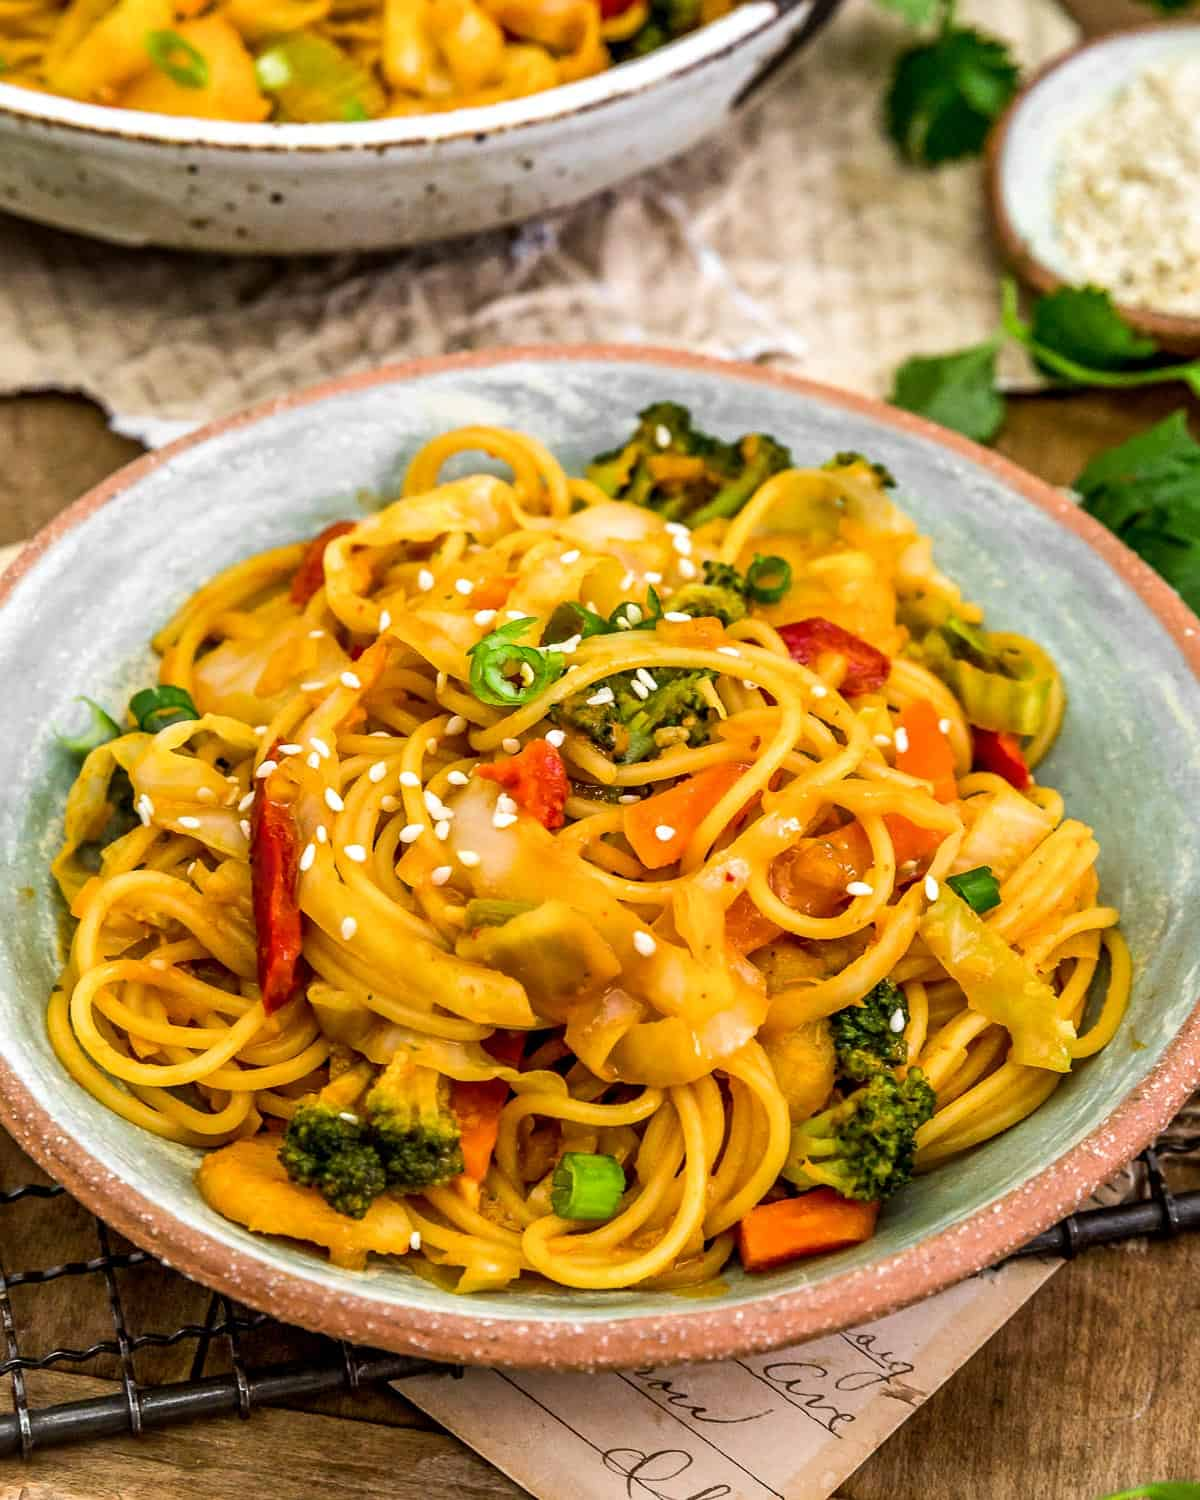 Served Thai Curry Cabbage Noodle Stir Fry